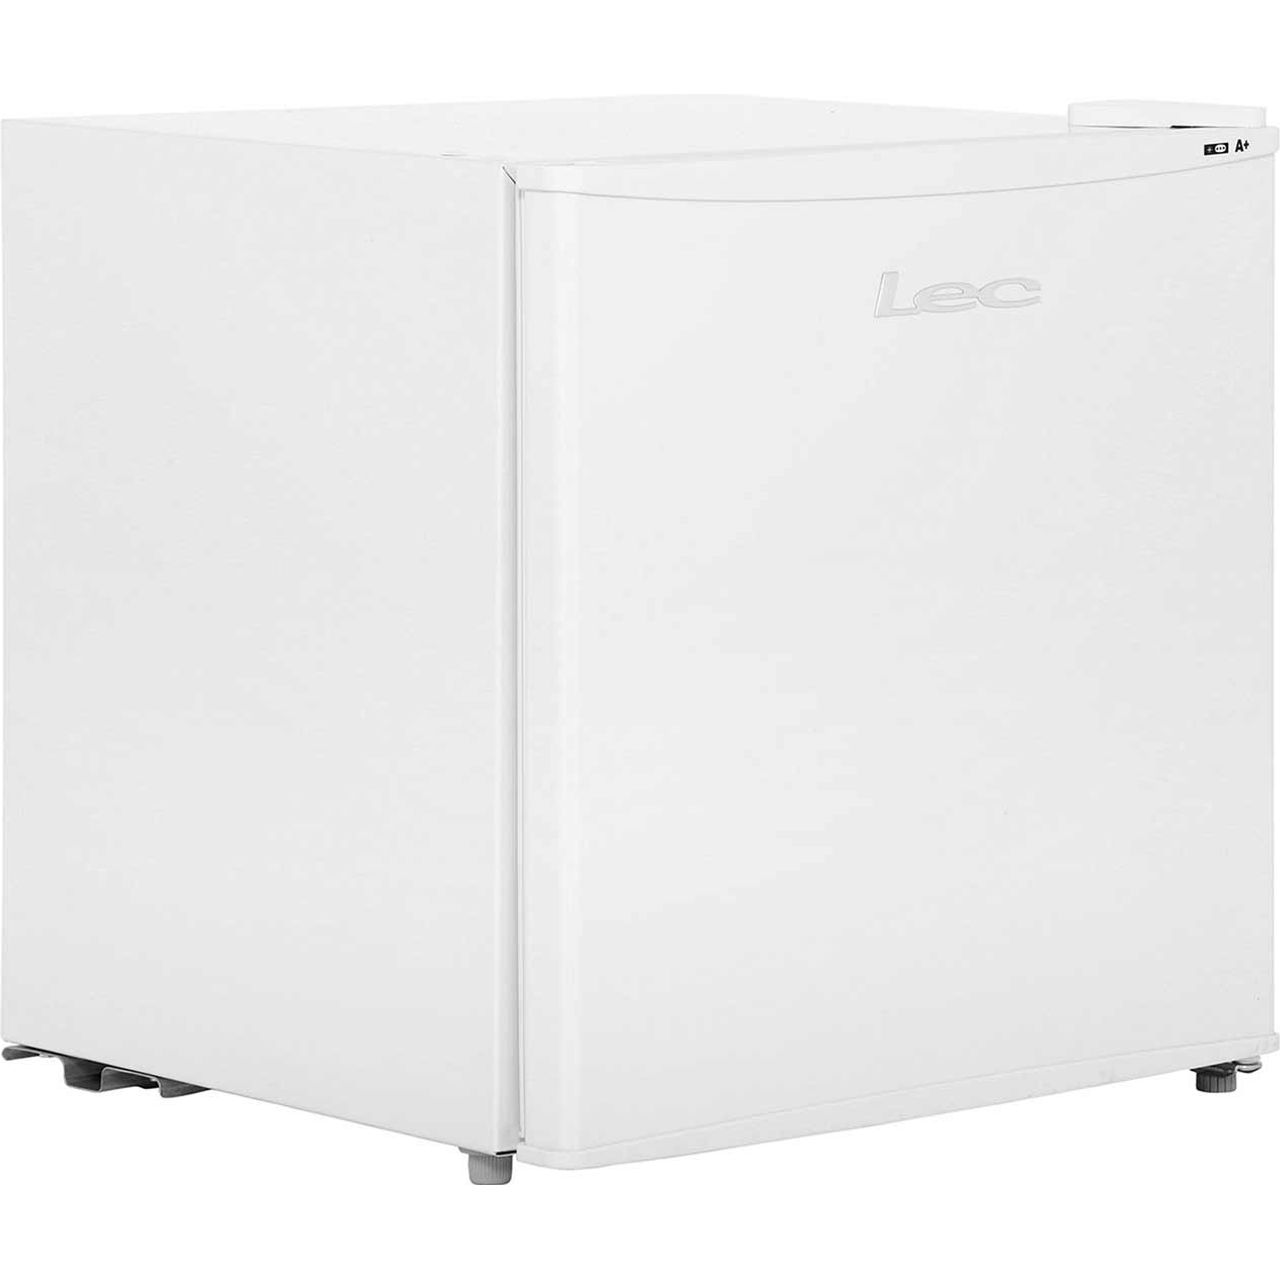 Lec U50052W Free Standing Freezer in White